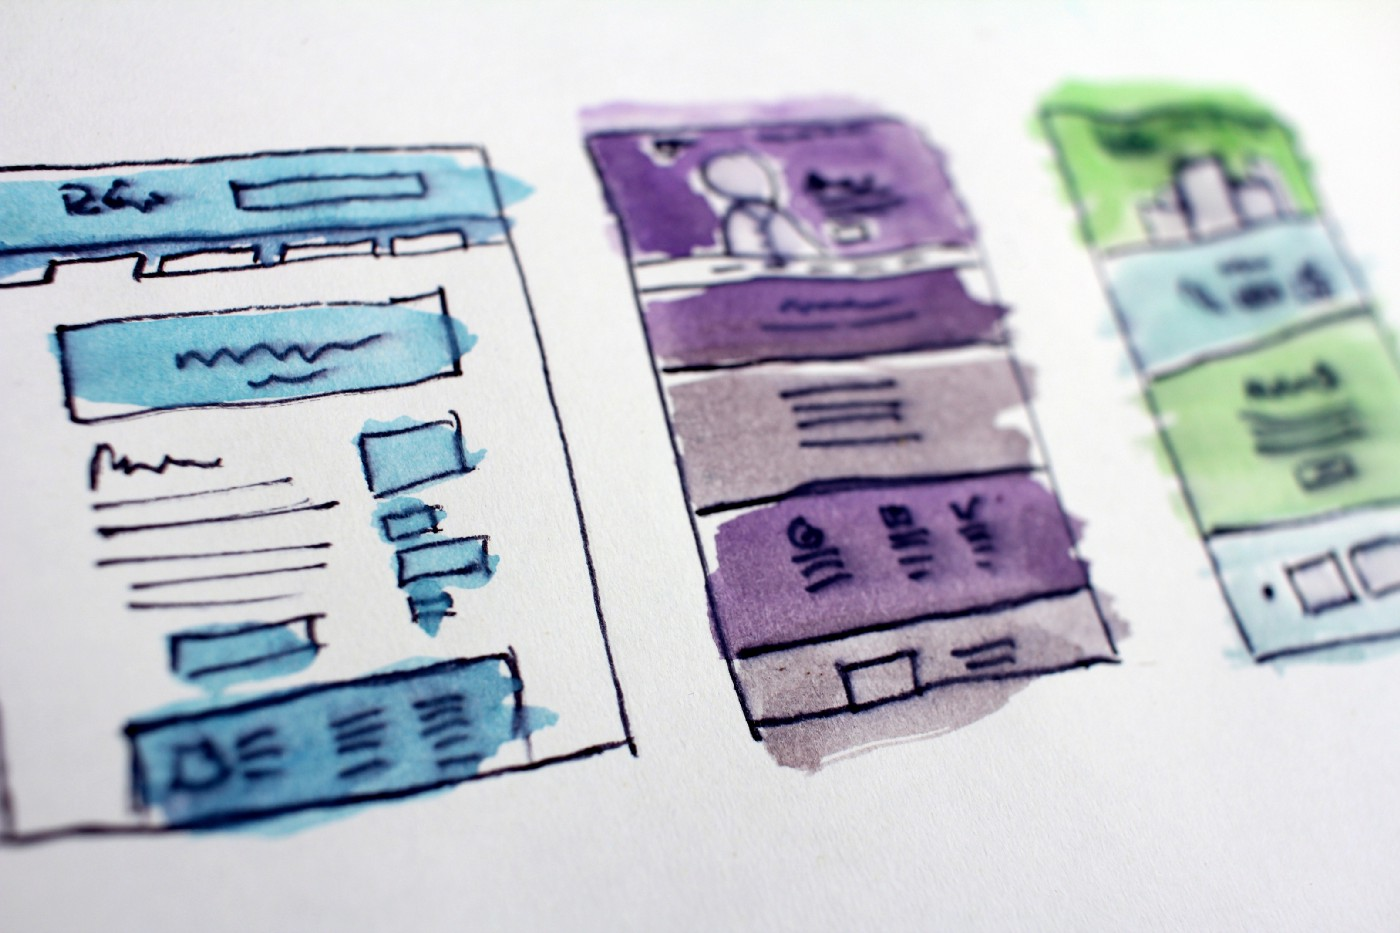 Design Of Website By Taking In Wireframes.